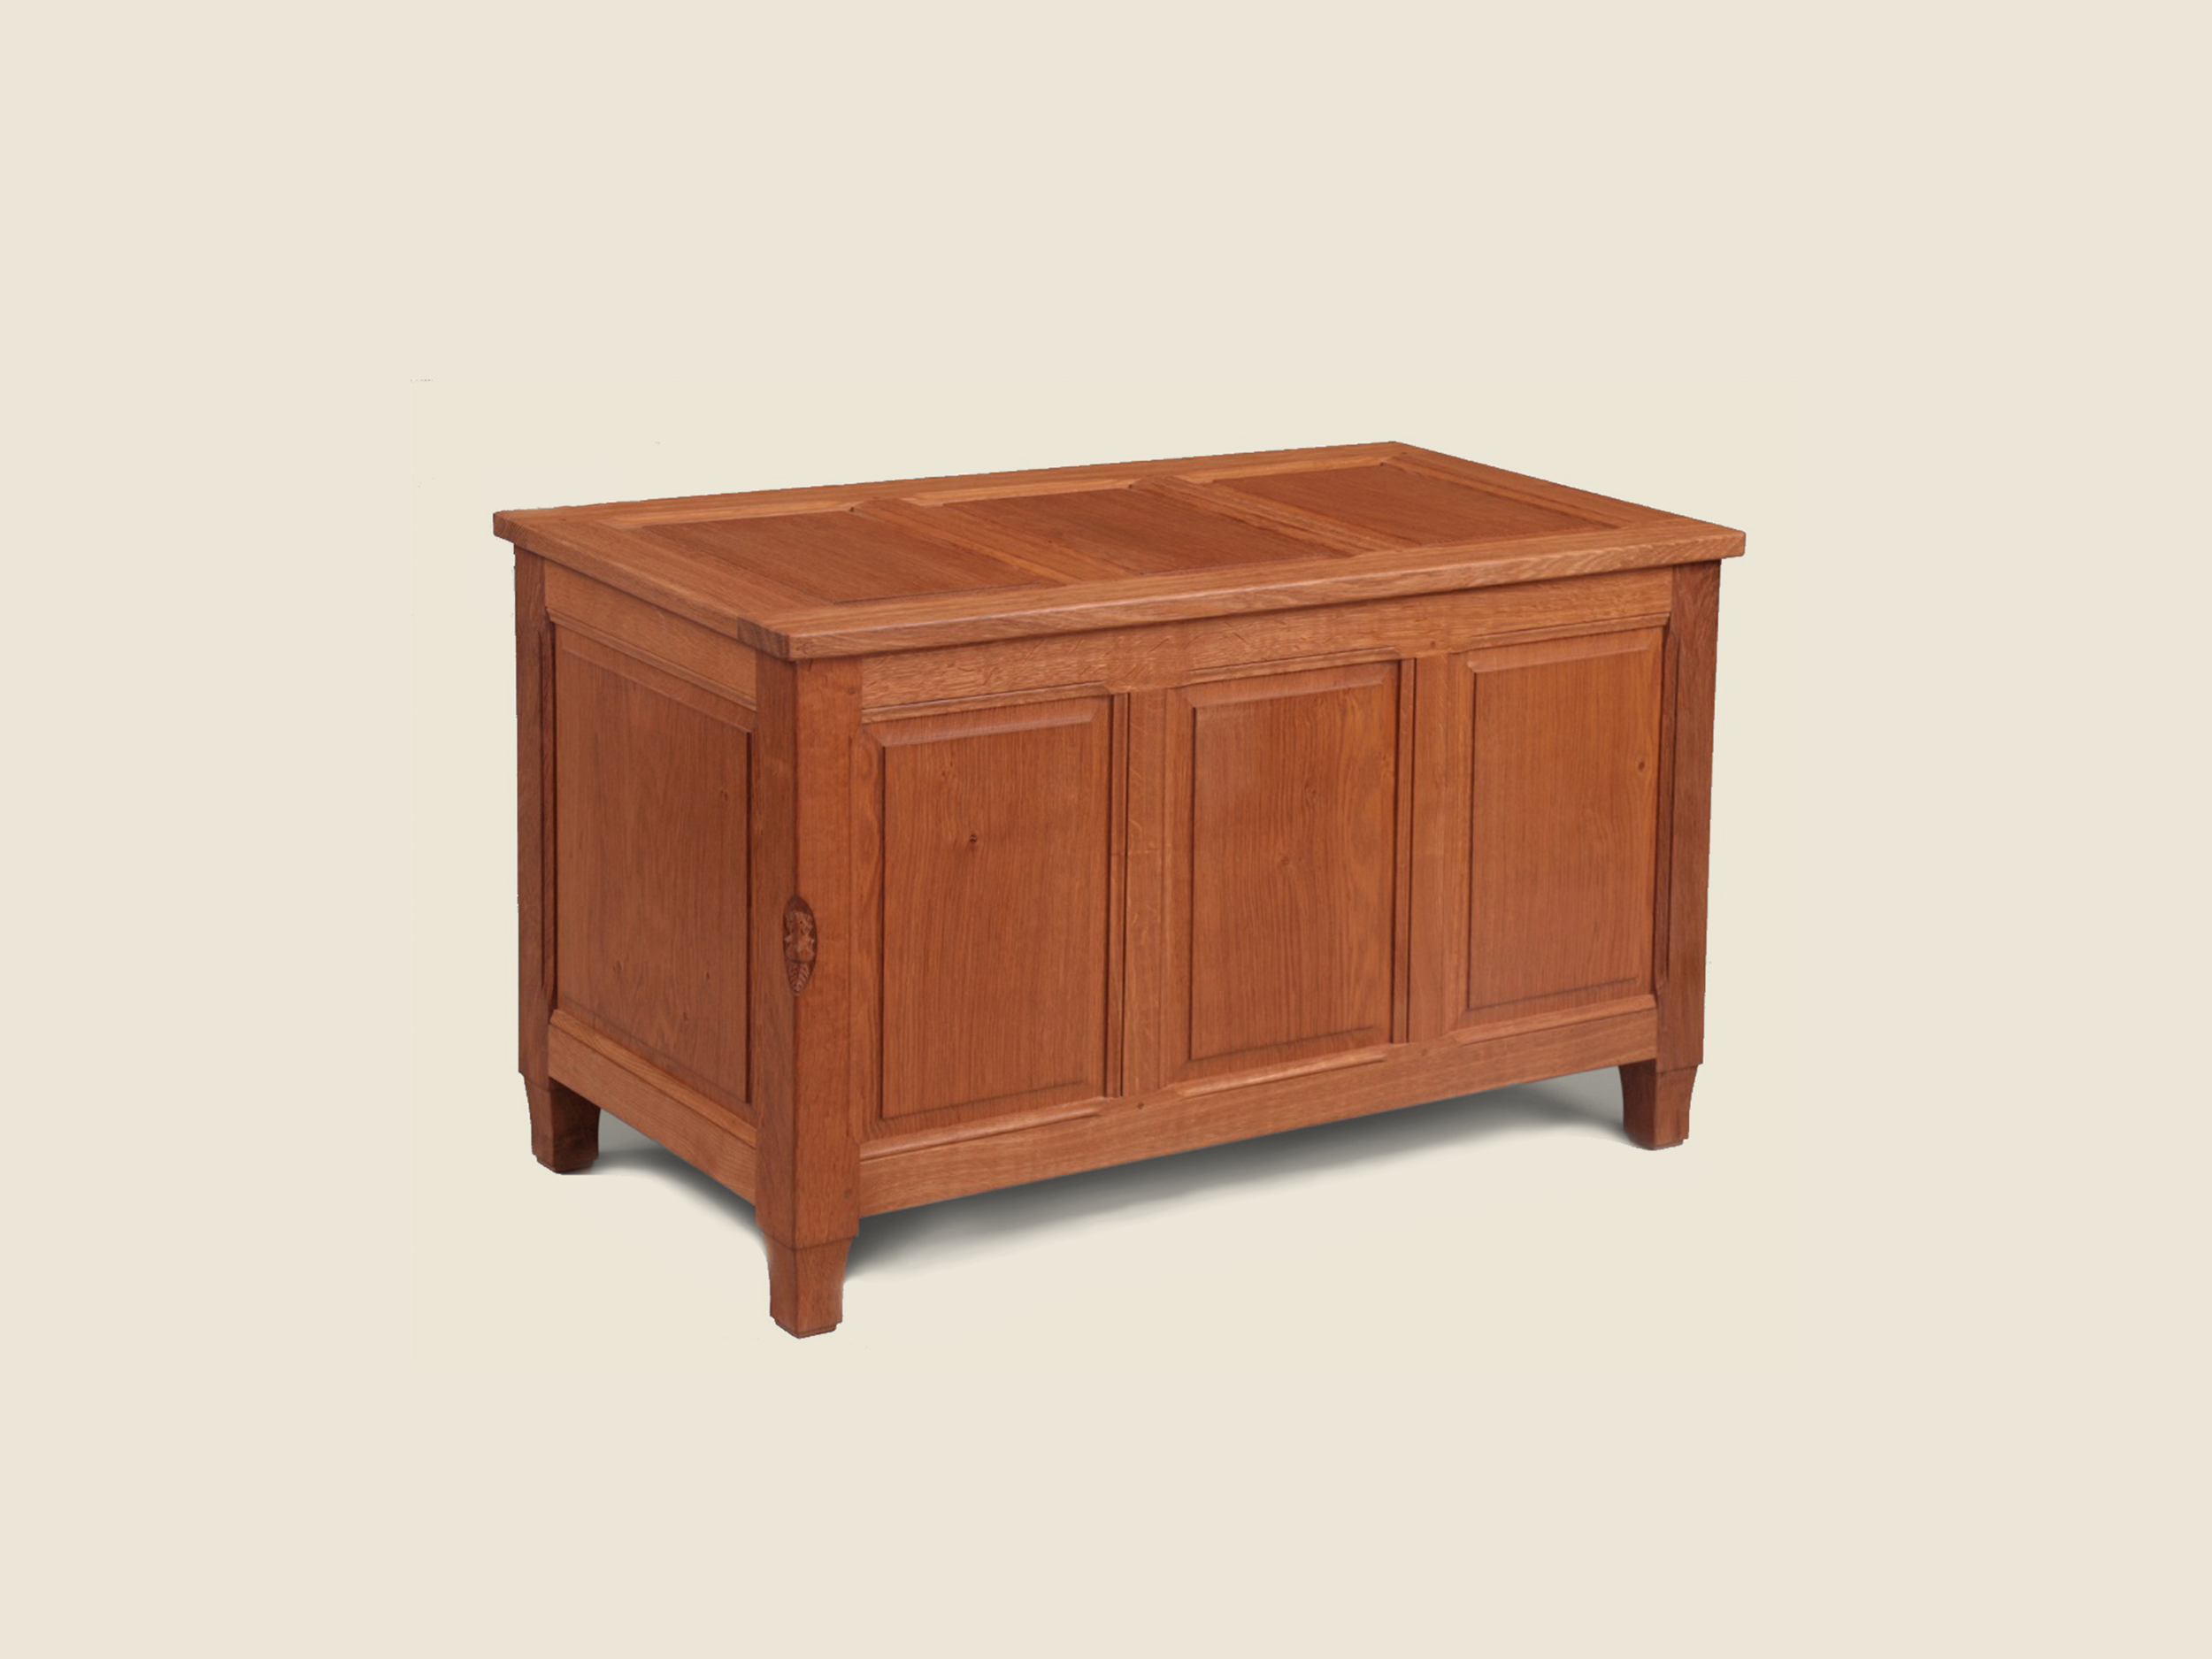 BFB_0000s_0001_bfb_014_solid_oakblanket_toy_chest.jpg.png